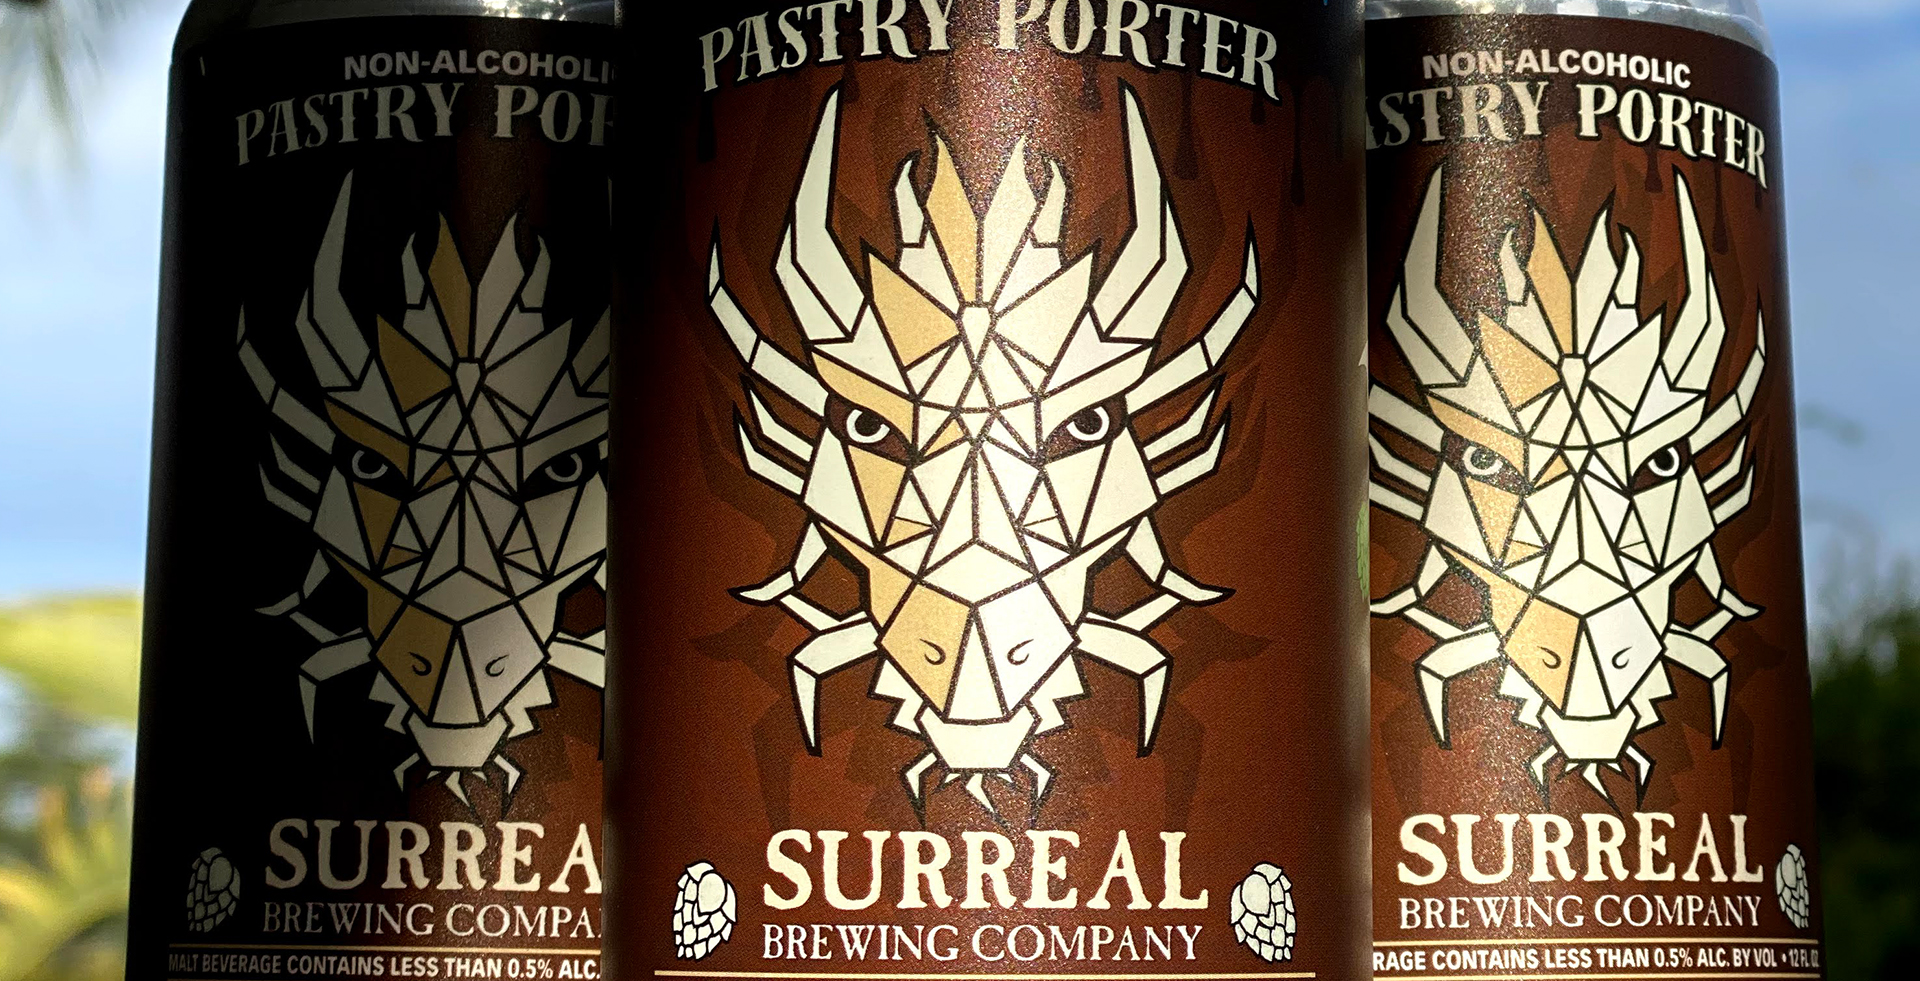 Can of Pastry Porter Non alcoholic IPA